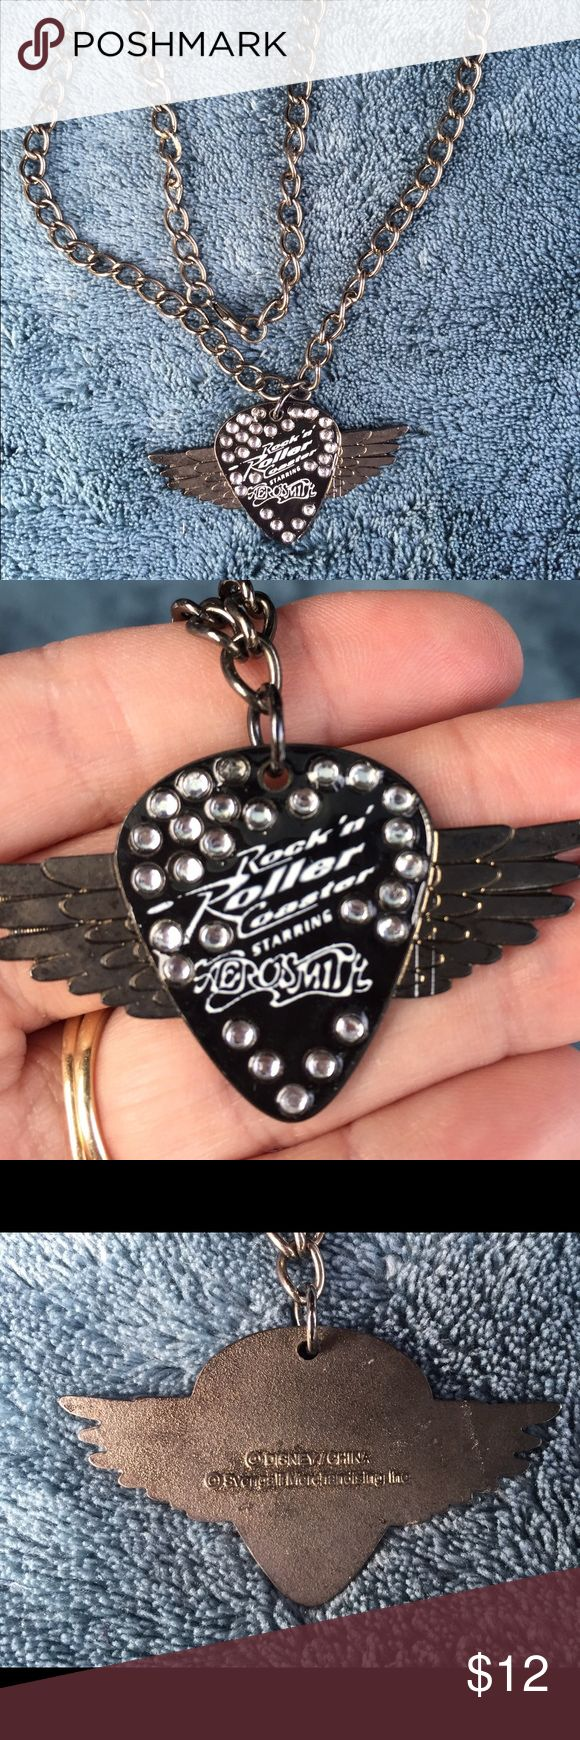 Rock n roller - Aerosmith guitar pick necklace Can't get to Hollywood Studios in Florida? Are you a huge Aerosmith fan? Then you will love this guitar pick necklace!! In excellent condition. It was loving adored having hung on my daughters pegboard for a few years after her 1st ride on rock n roller coaster over 10 years ago! Disney Jewelry Necklaces